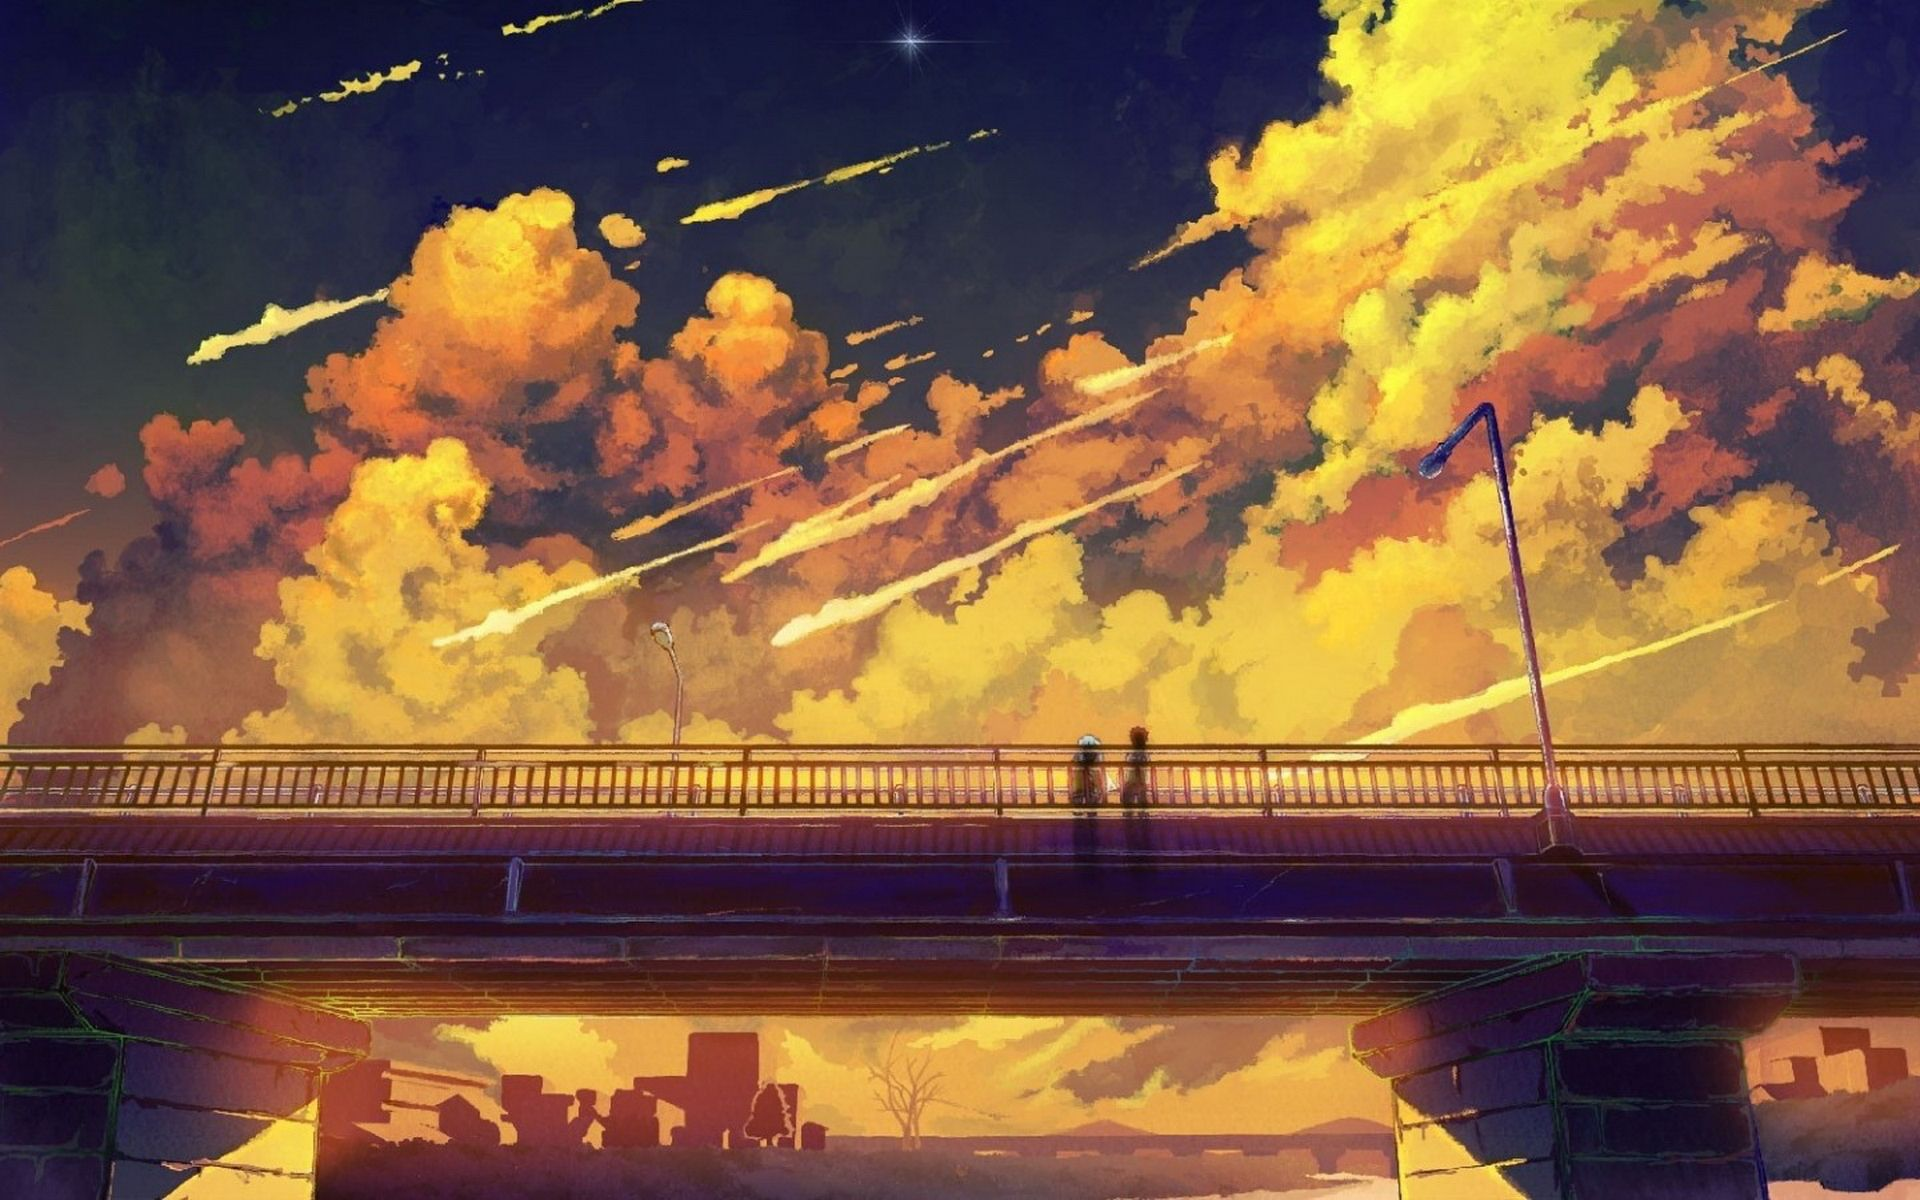 Stunning Anime Scenery Wallpaper 6811093 Anime Scenery Scenery Wallpaper Anime Scenery Wallpaper